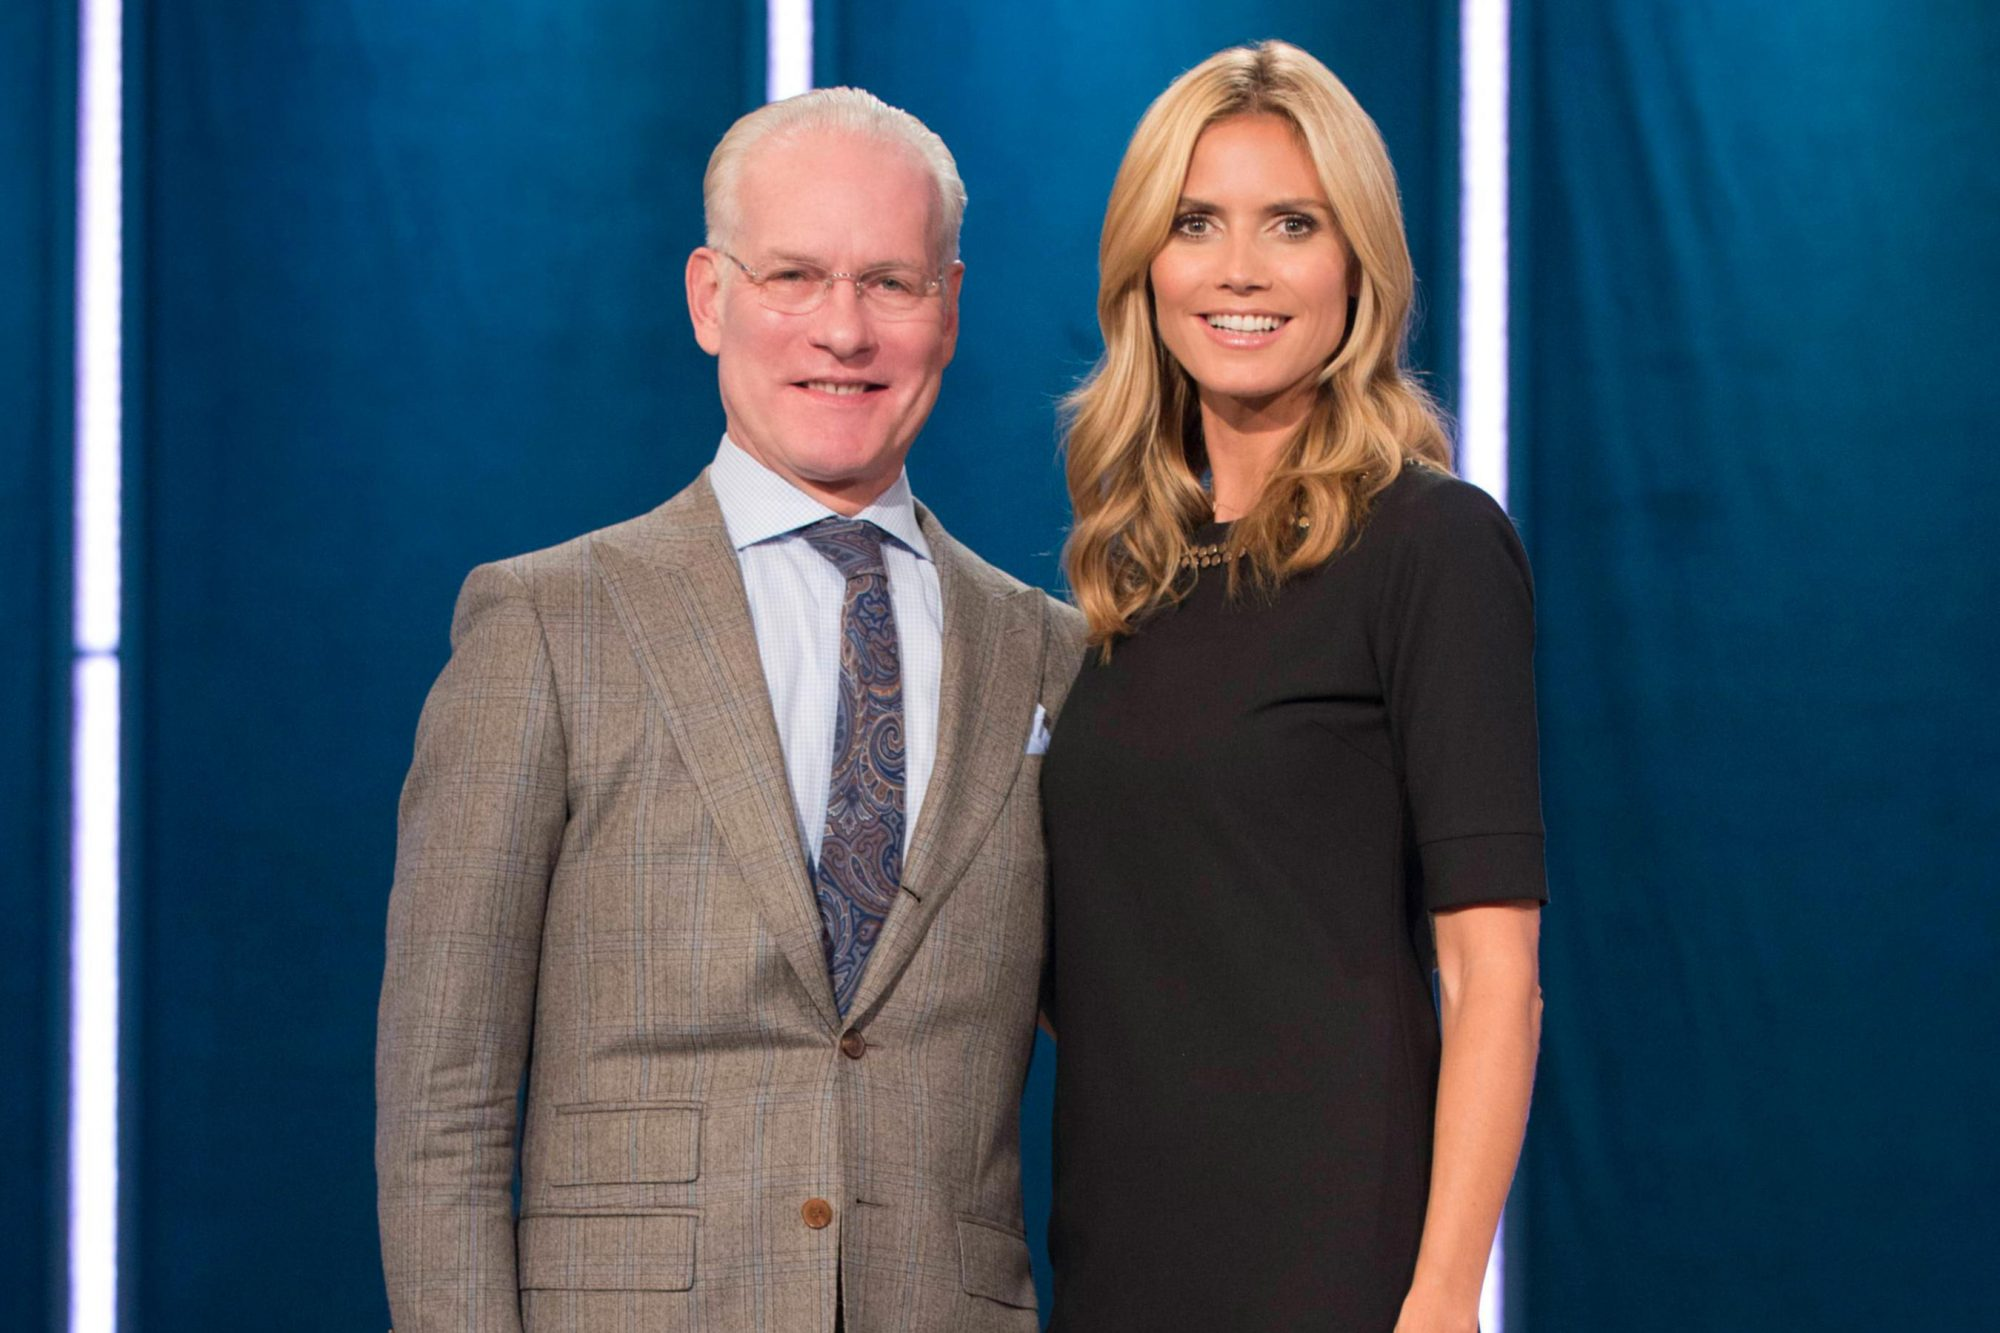 PROJECT RUNWAY, l-r: Tim Gunn, Heidi Klum, 'The Rainway' (Season 13, Episode 8, aired September 11,